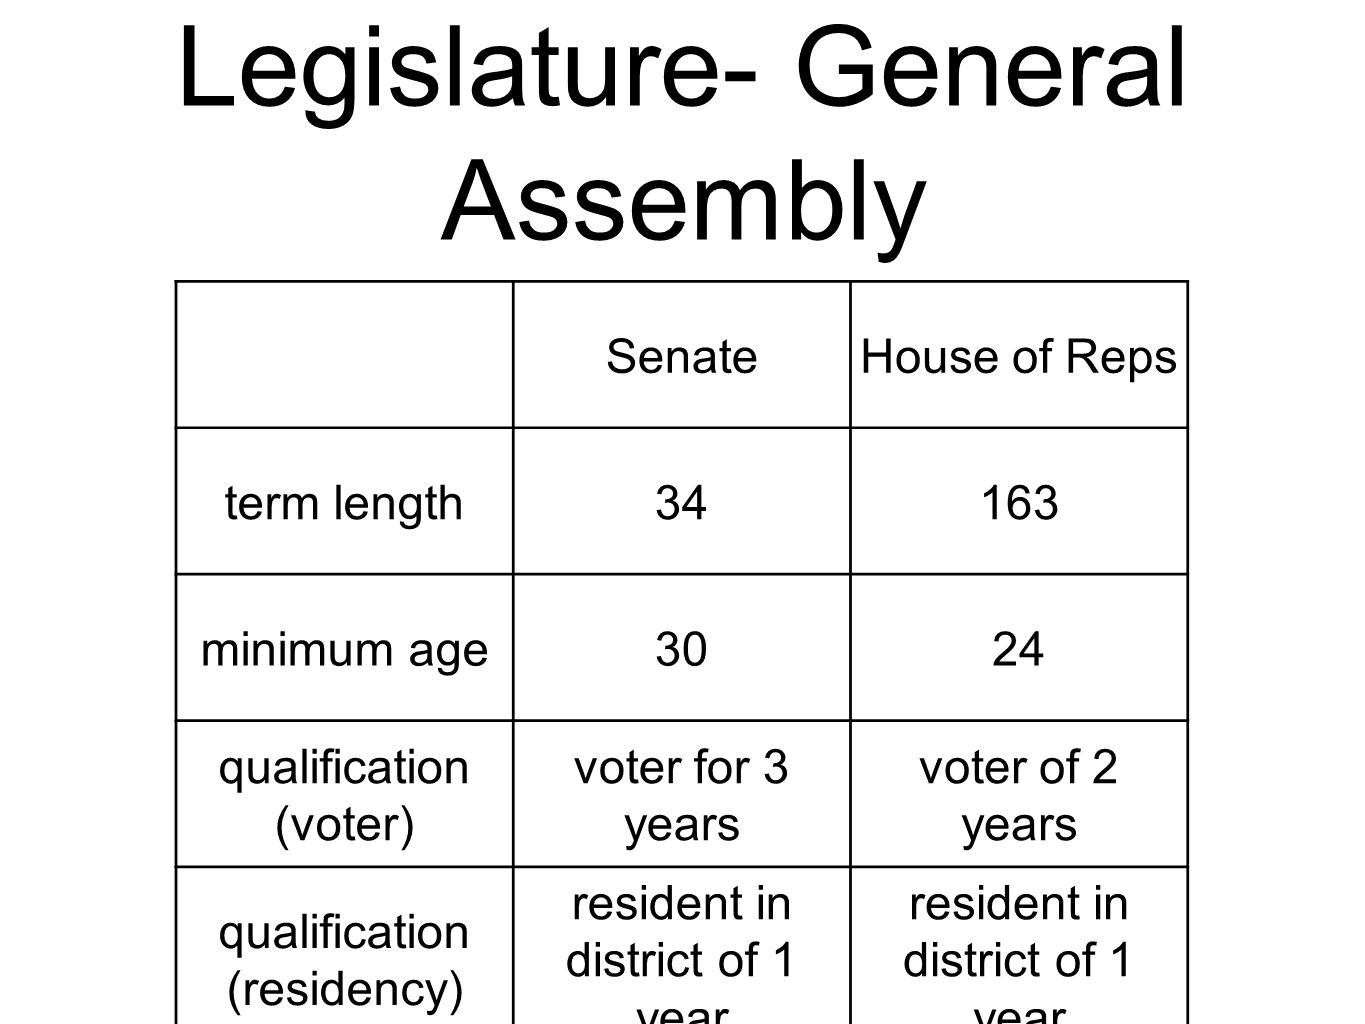 Legislature- General Assembly SenateHouse of Reps term length34163 minimum age3024 qualification (voter) voter for 3 years voter of 2 years qualificat